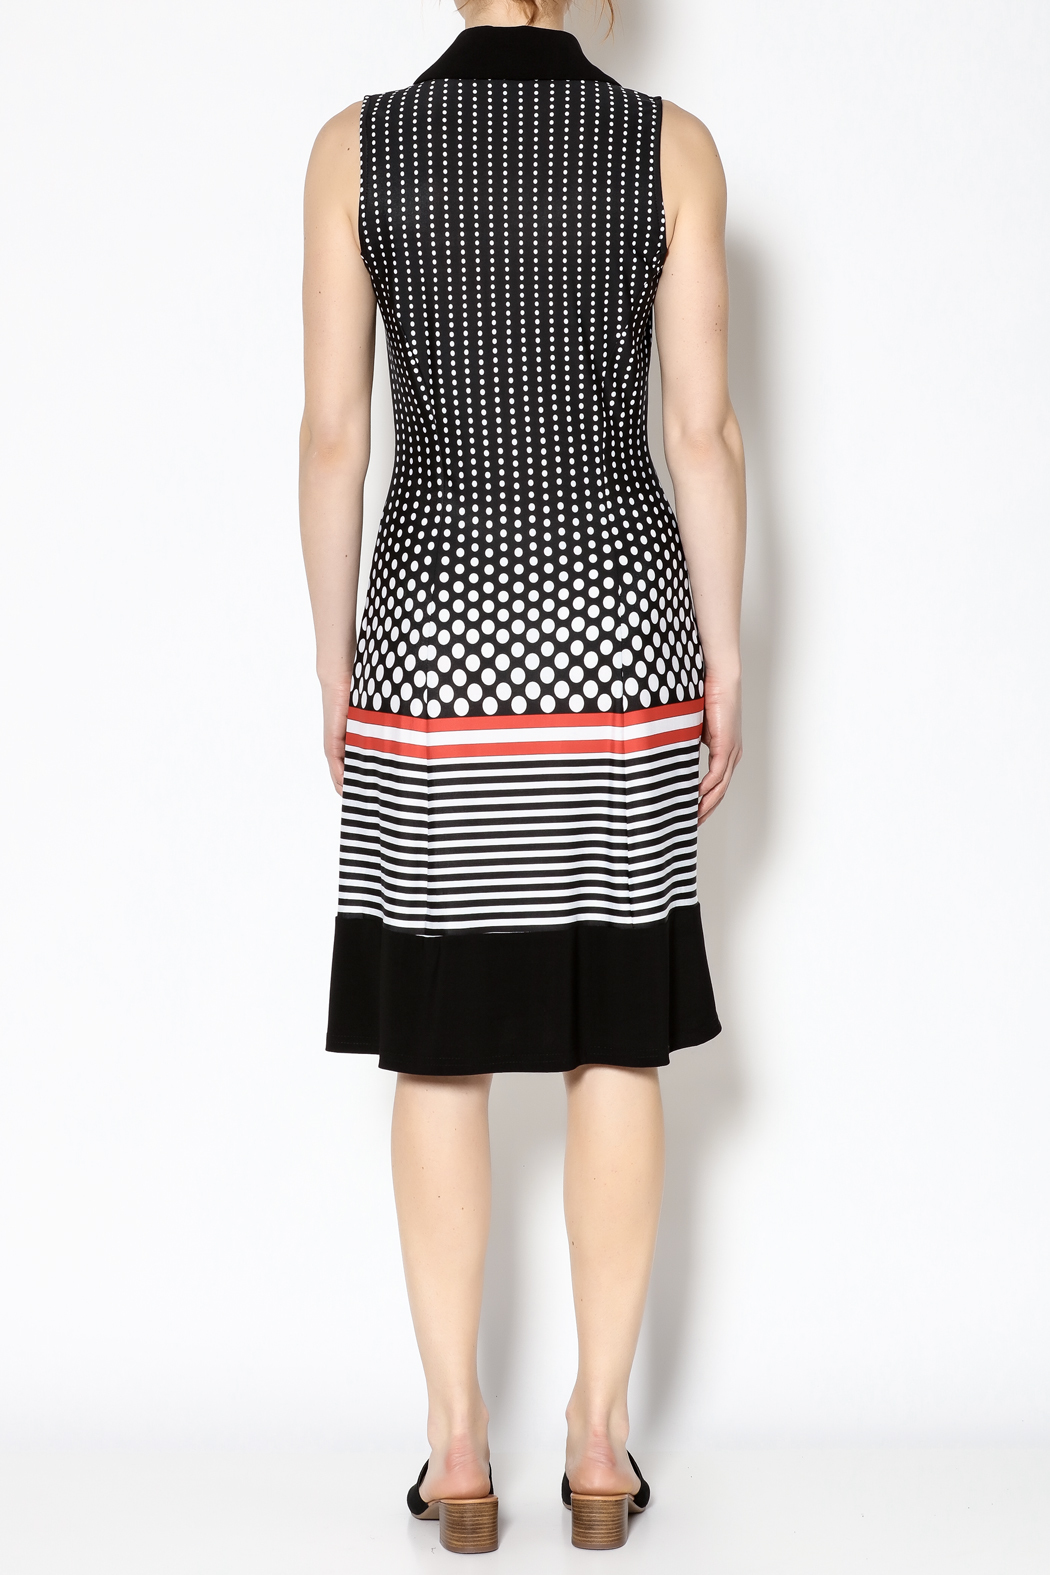 Michael Tyler Collections Polka Dot Dress - Back Cropped Image